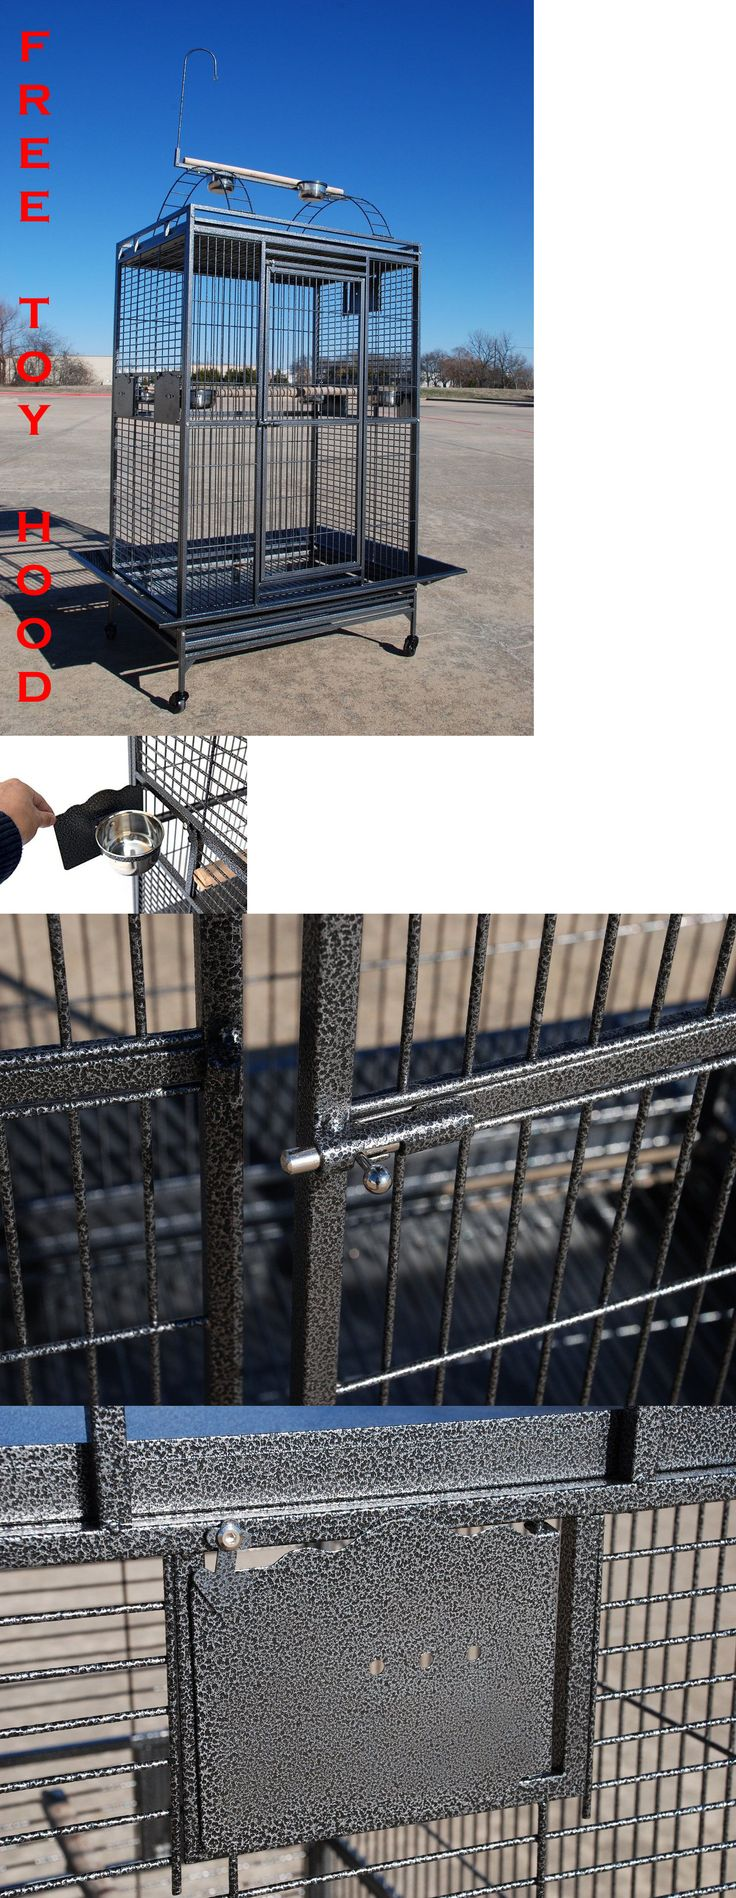 Cages 46289: Extra Large Parrot Cage For Macaw Cockatoo African Grey Amazon 32X23x66h -258 -> BUY IT NOW ONLY: $265.89 on eBay!